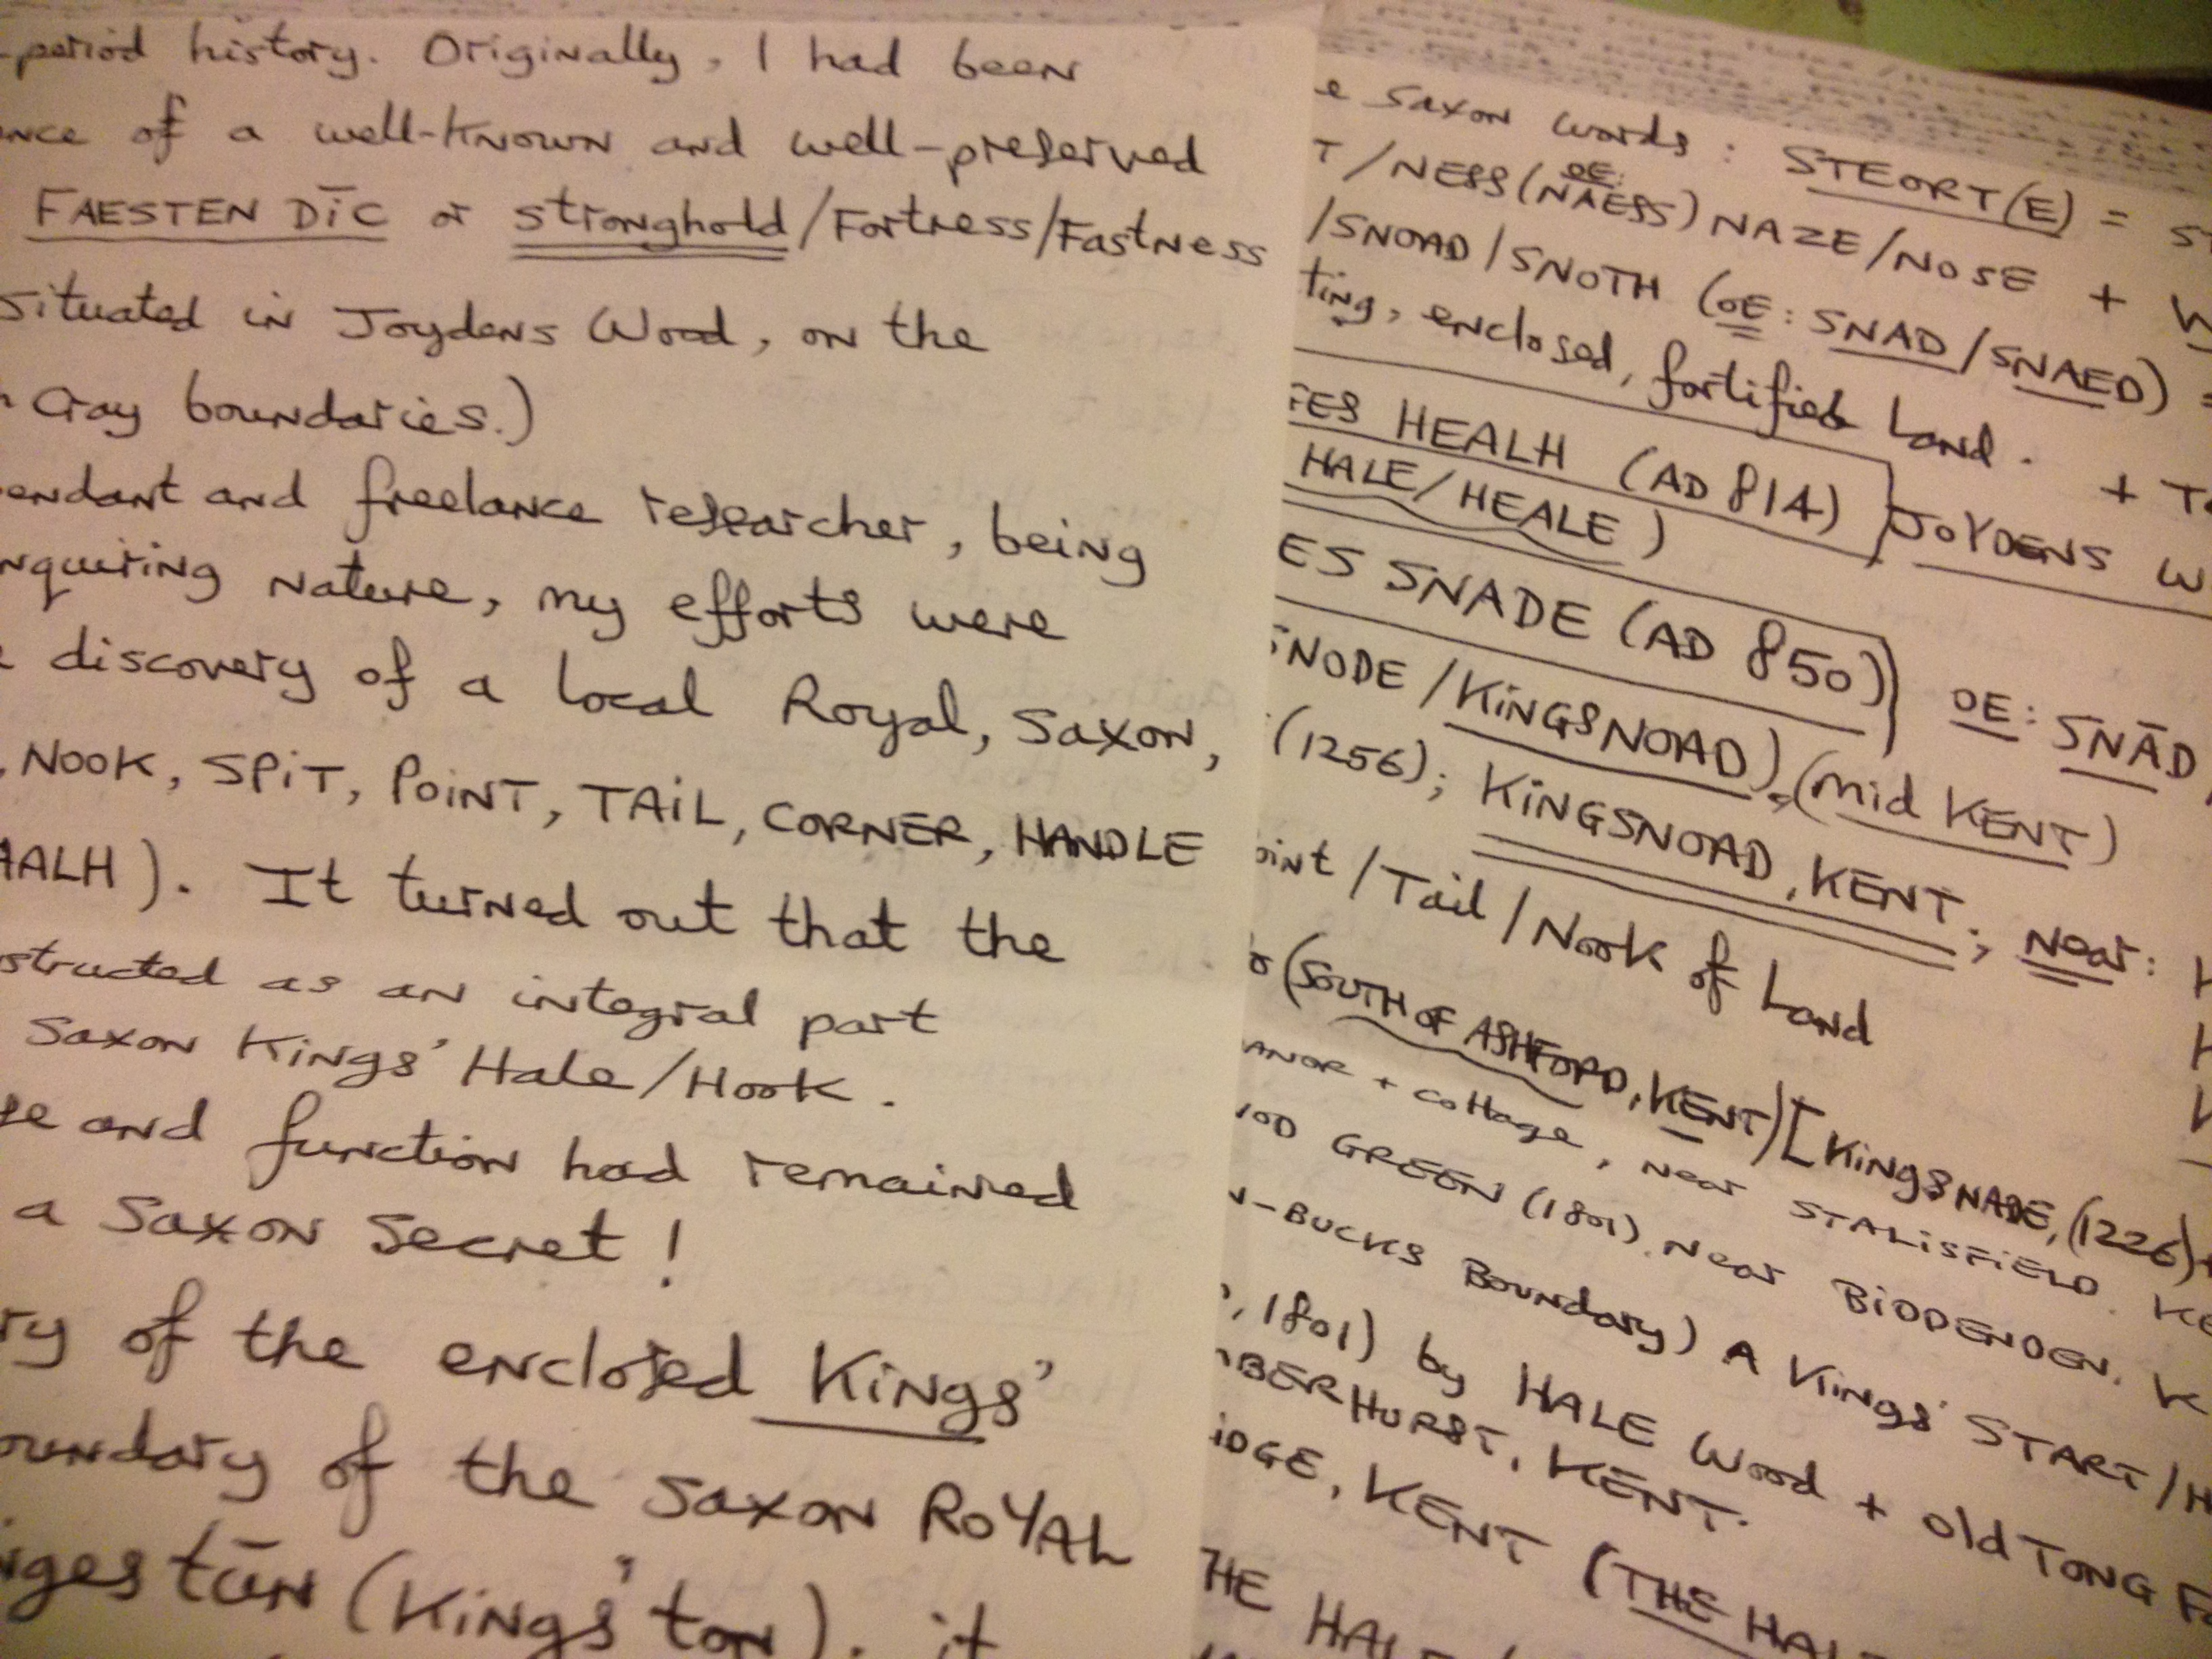 Best letter ever? | Surrey Medieval